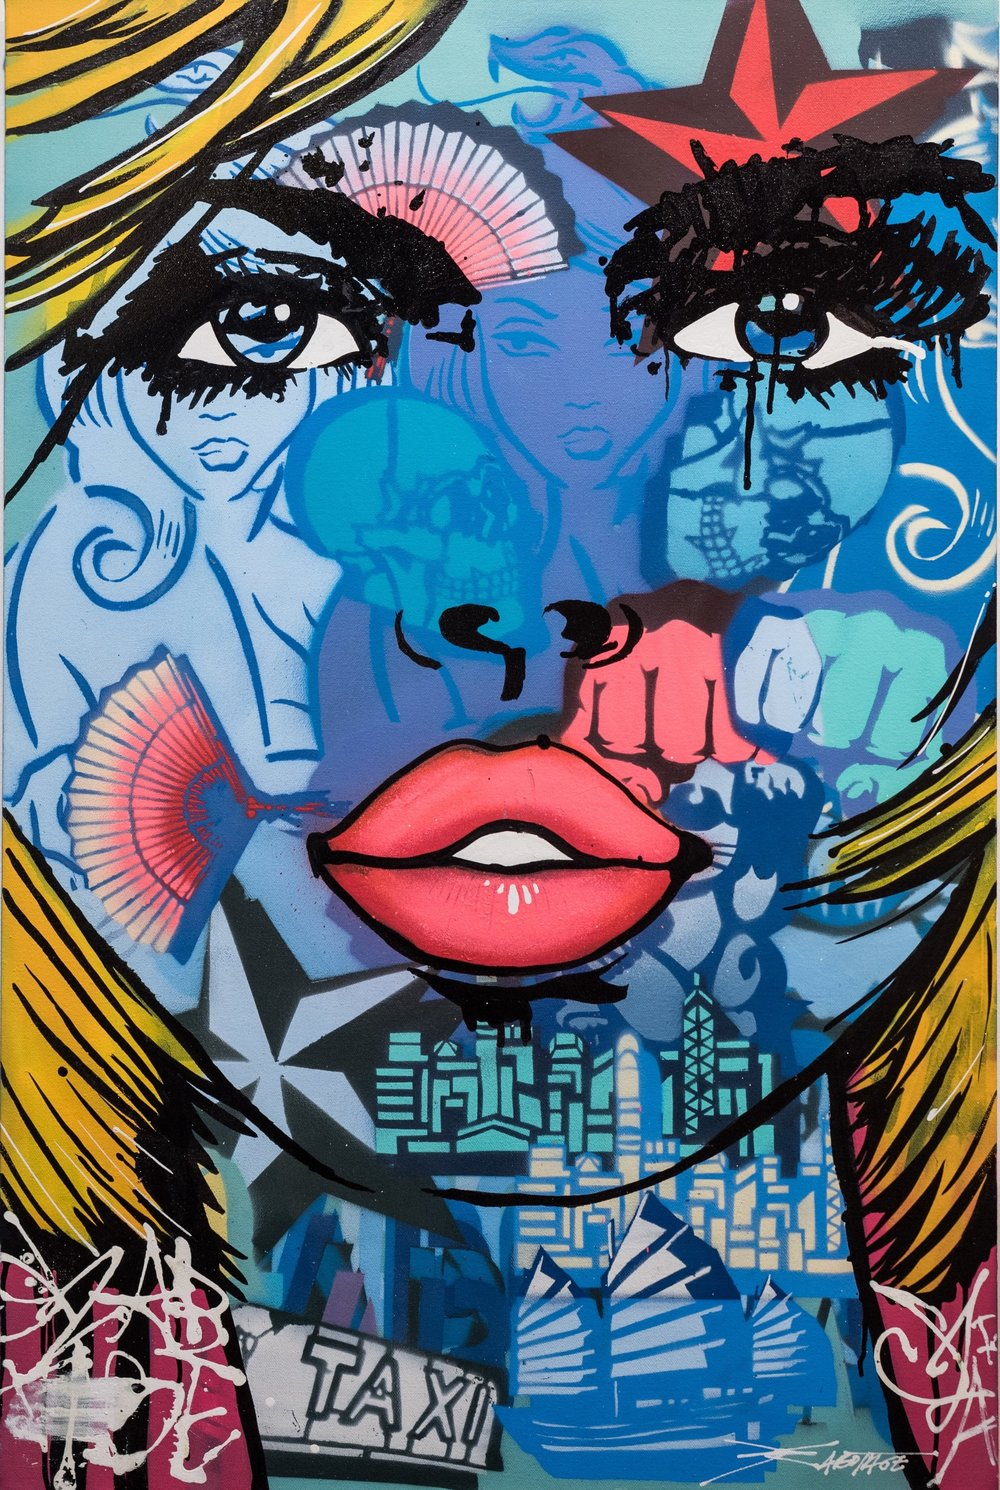 """""""SUBLIMEY"""" Spray Paint, Stencil, Graffiti Marker and Ink 61 x 91 cm 2019"""